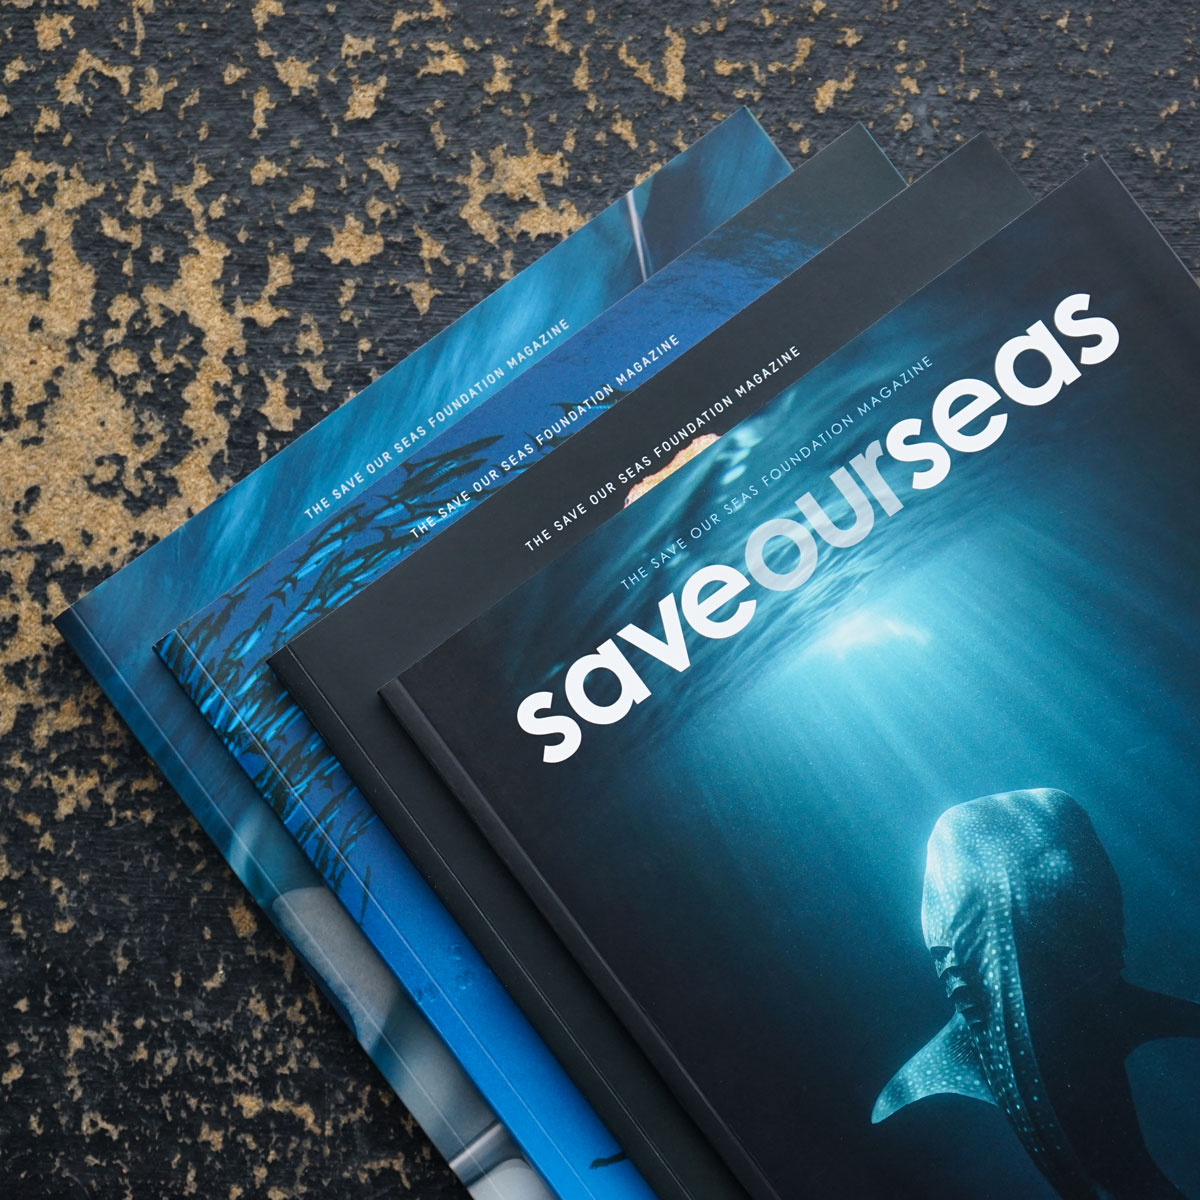 Polygravia_Magazine_Save_our_Seas_01.JPG